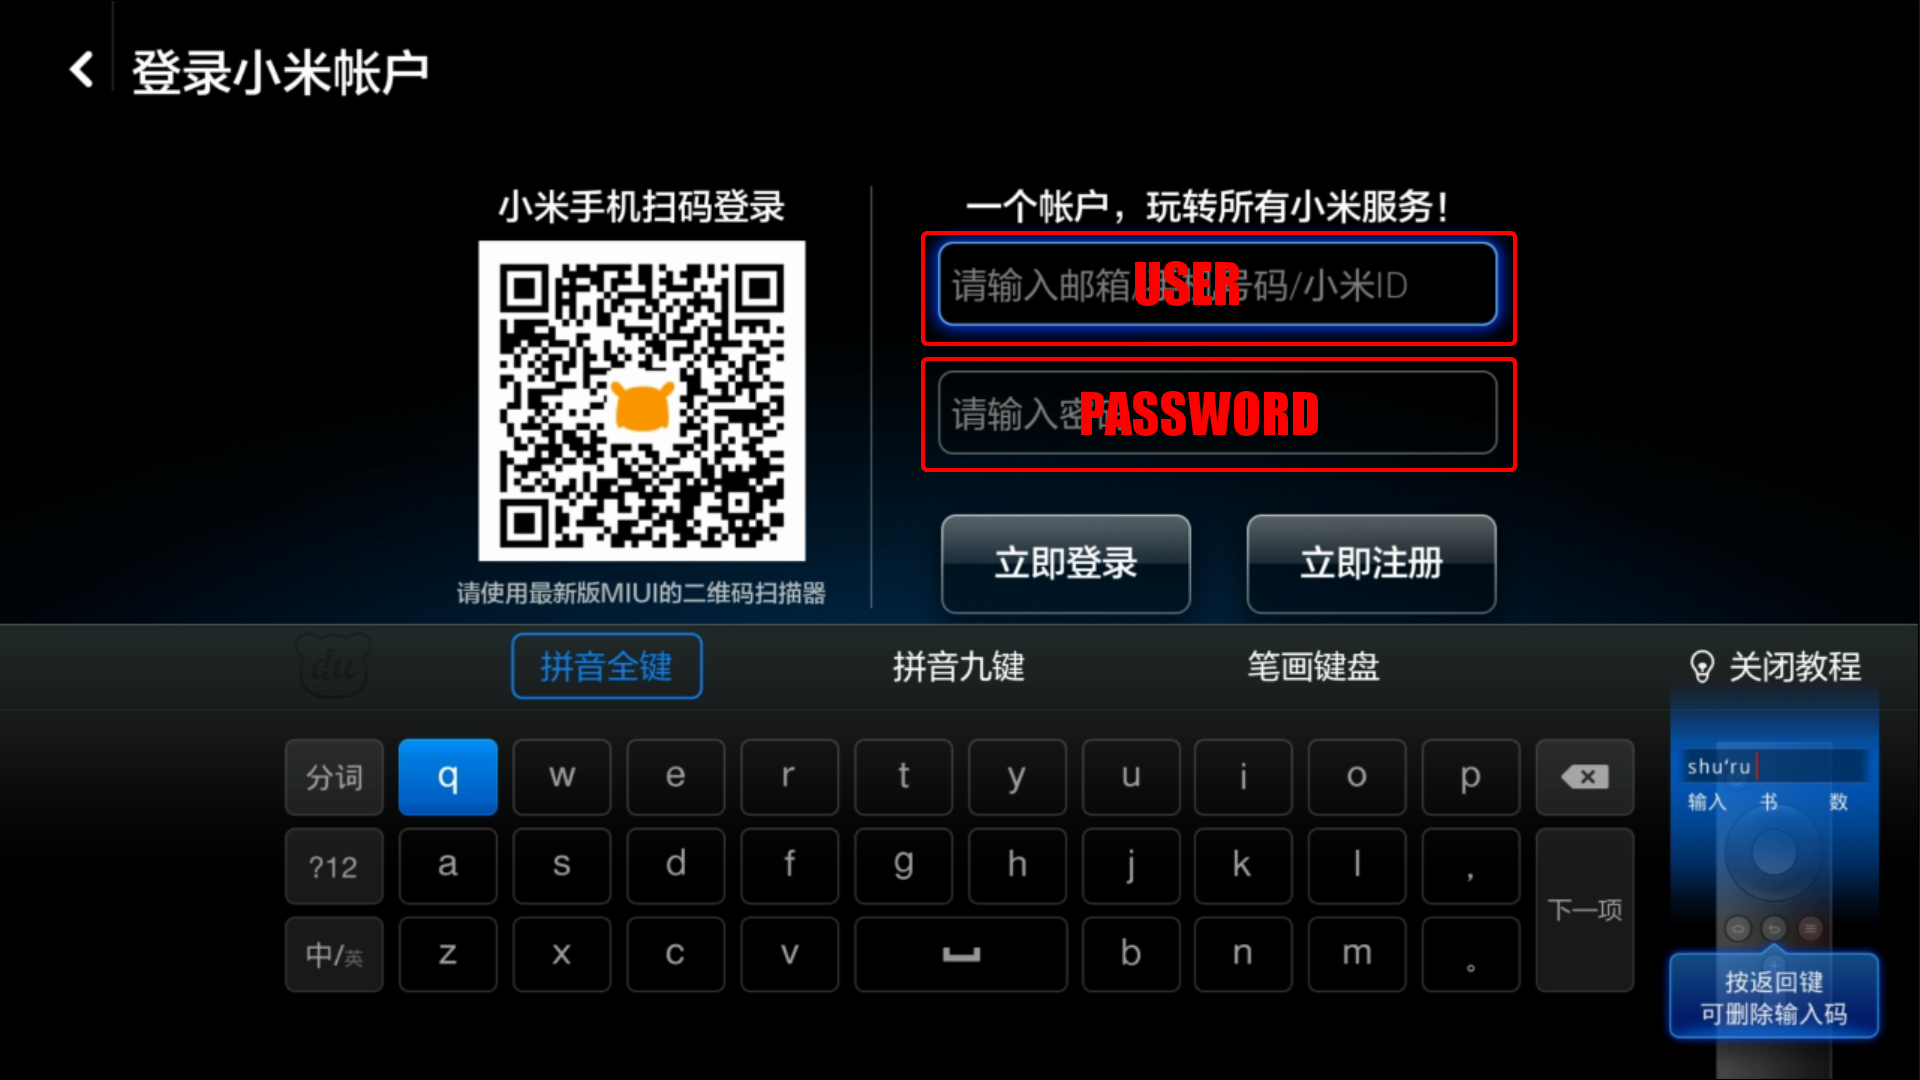 enter user and password